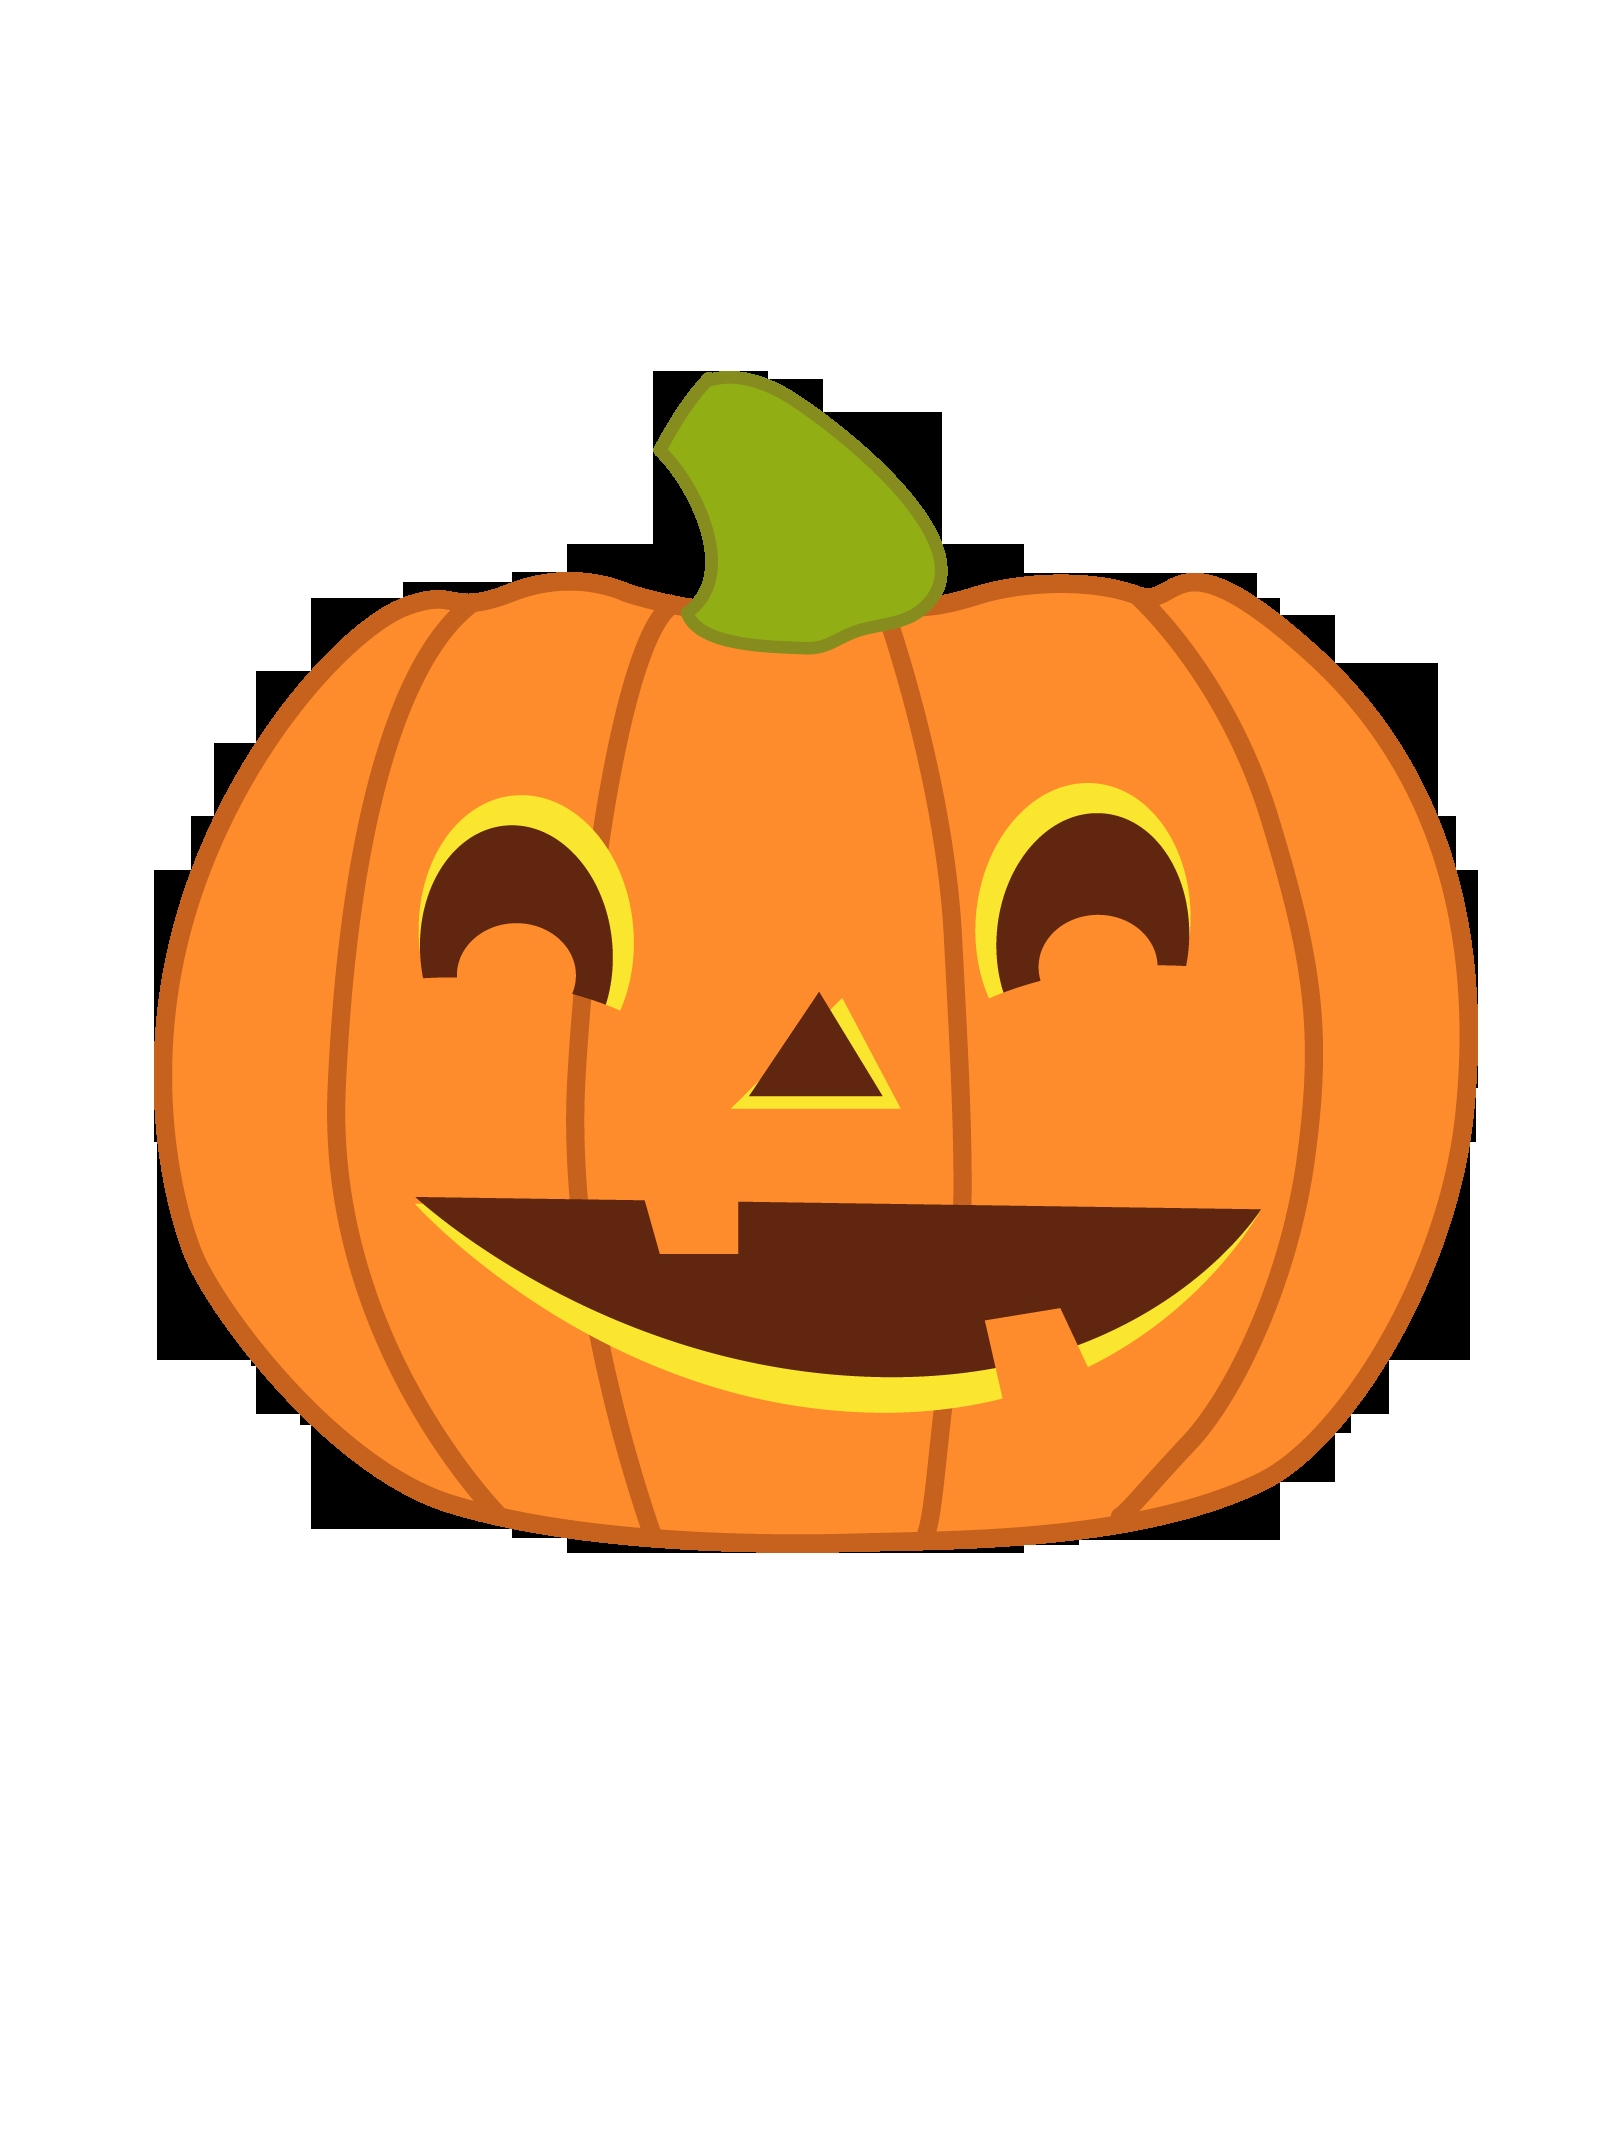 Squash clipart halloween. Awesome pumpkin collection digital